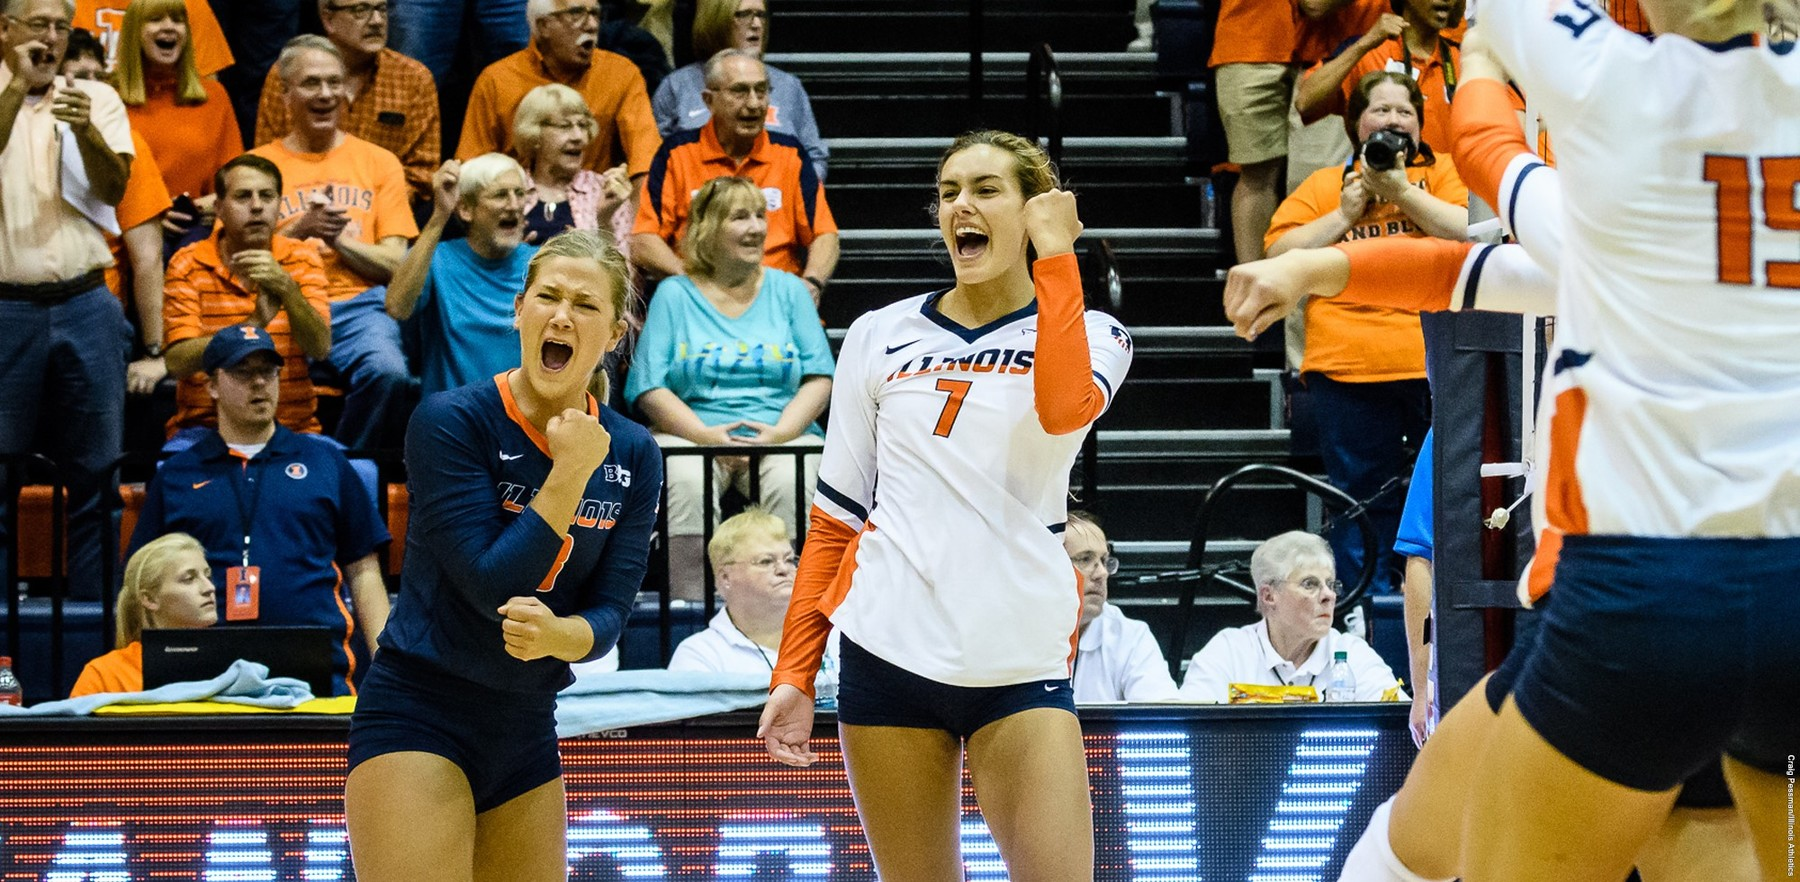 Illini volleyball players raise fists to celebrate a point